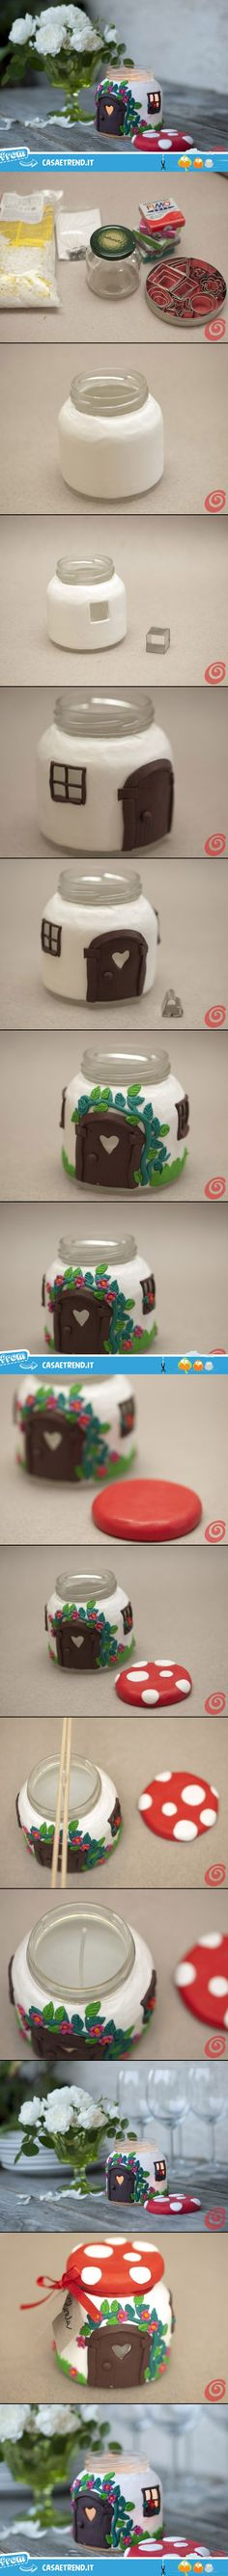 This reminds me of a fairy house! Cute!